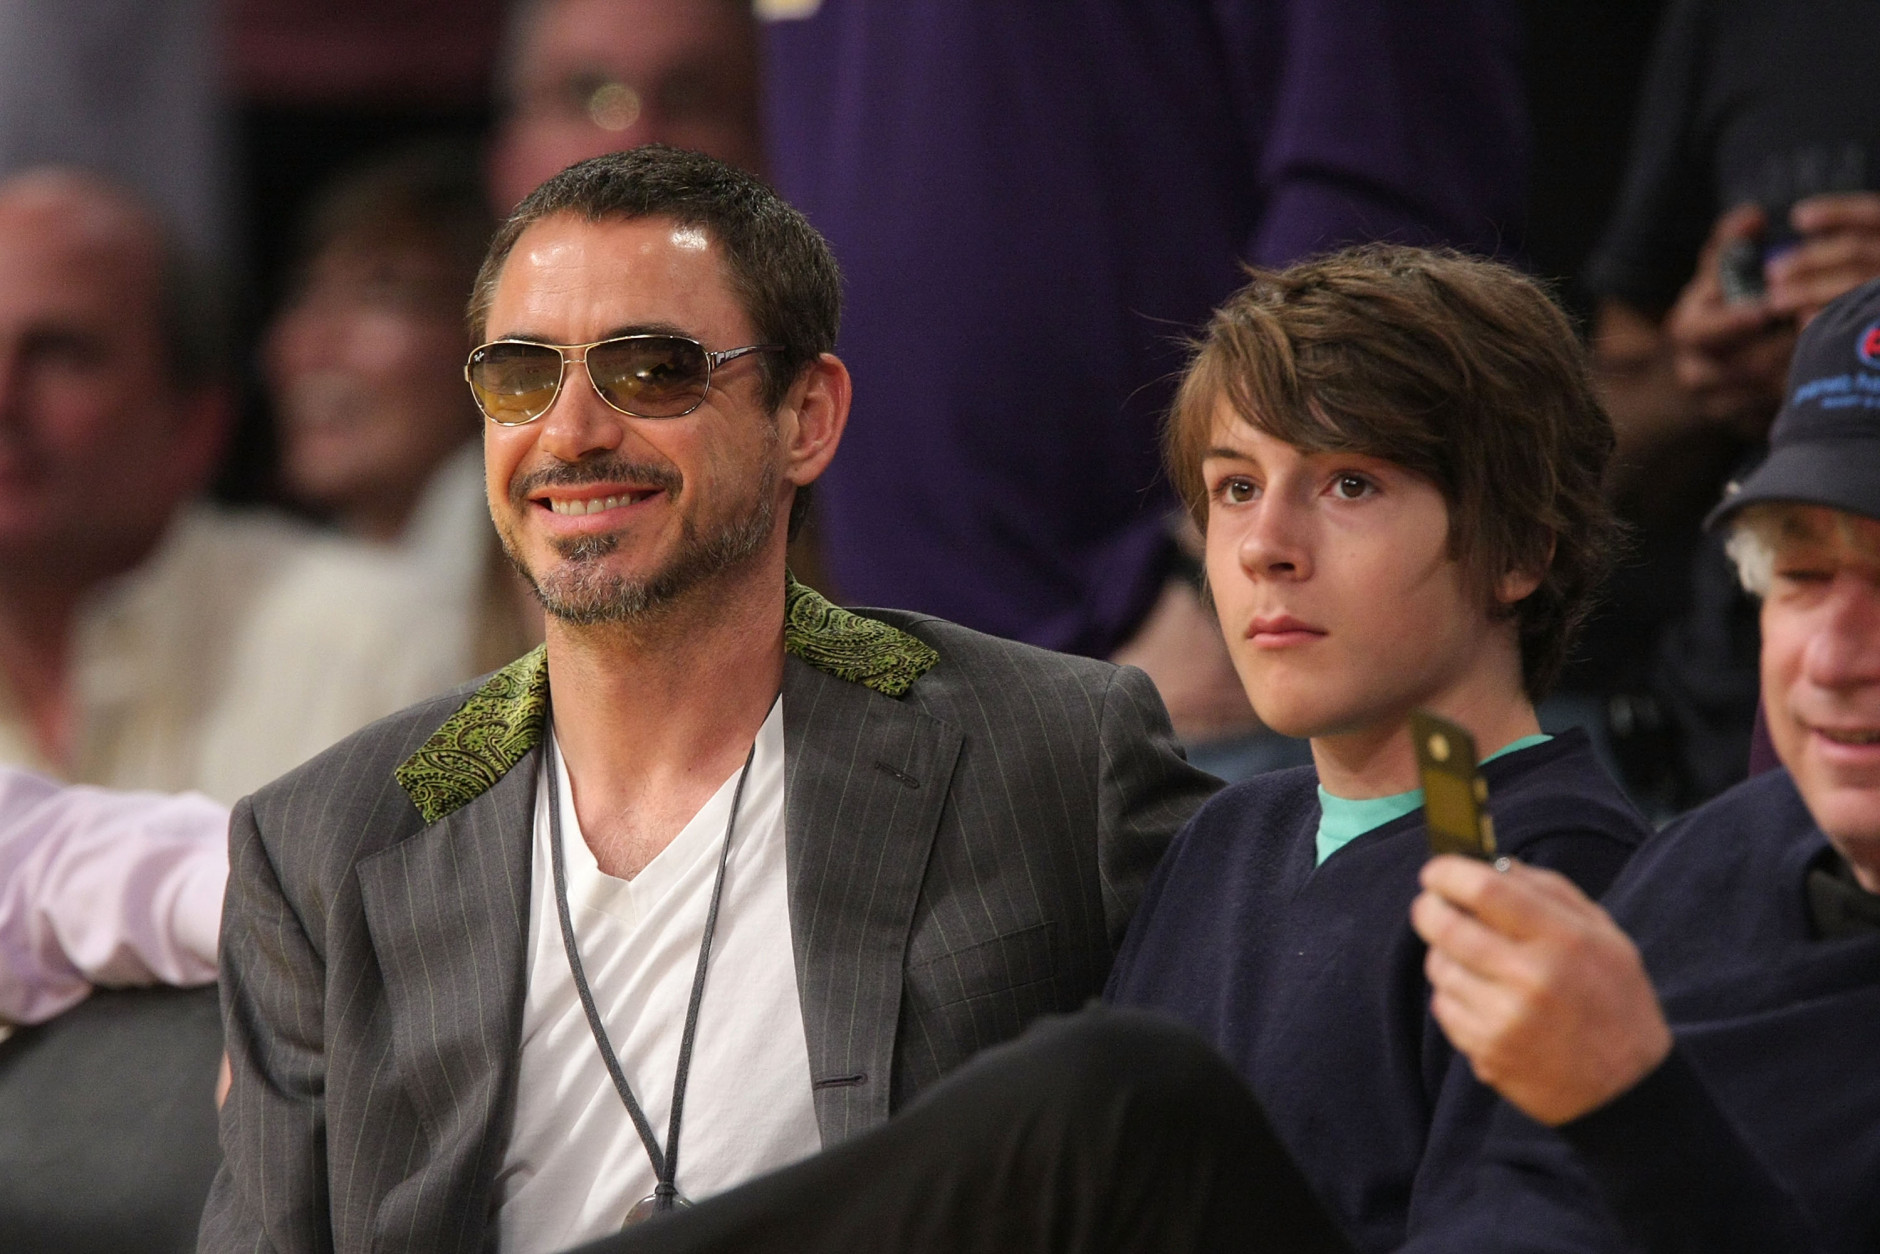 LOS ANGELES, CA - MAY 04:  Robert Downey Jr. (L) and his son Indio Downey (R) attend the Los Angeles Lakers against Utah Jazz playoff game at the Staples Center on May 4, 2008 in Los Angeles, California.  (Photo by Noel Vasquez/Getty Images)